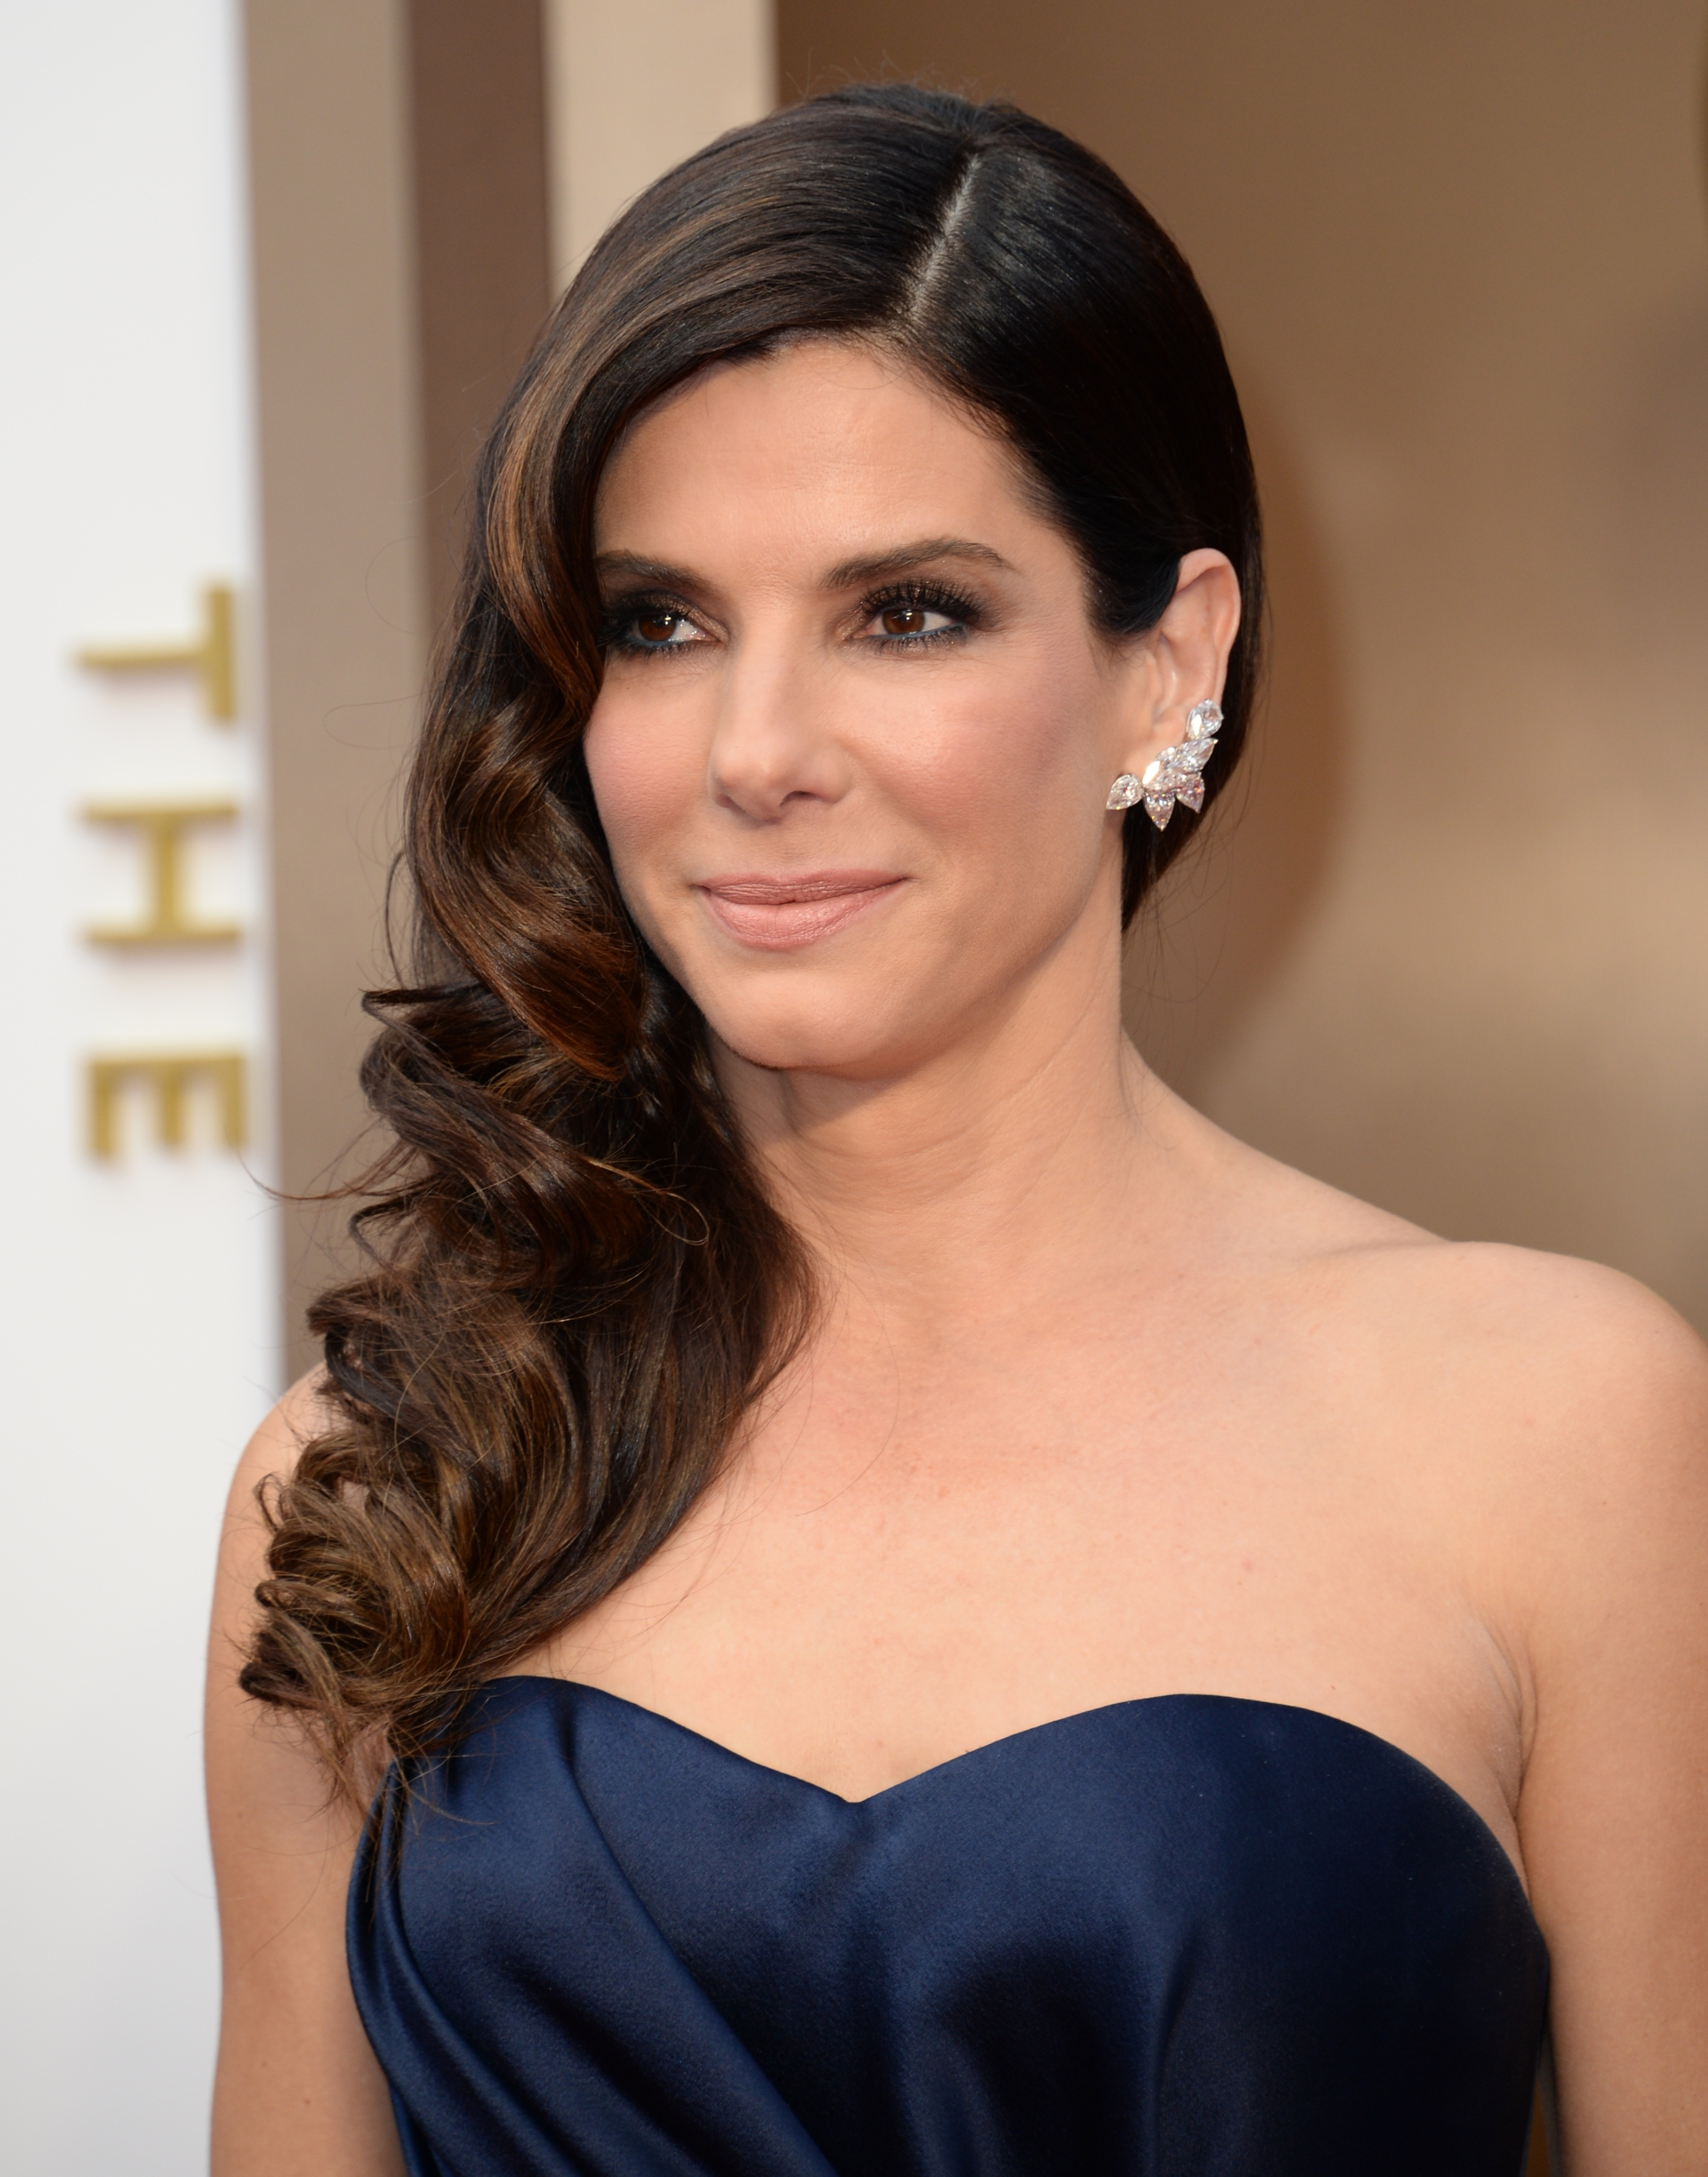 The Best Hairstyles at the 2014 Oscars